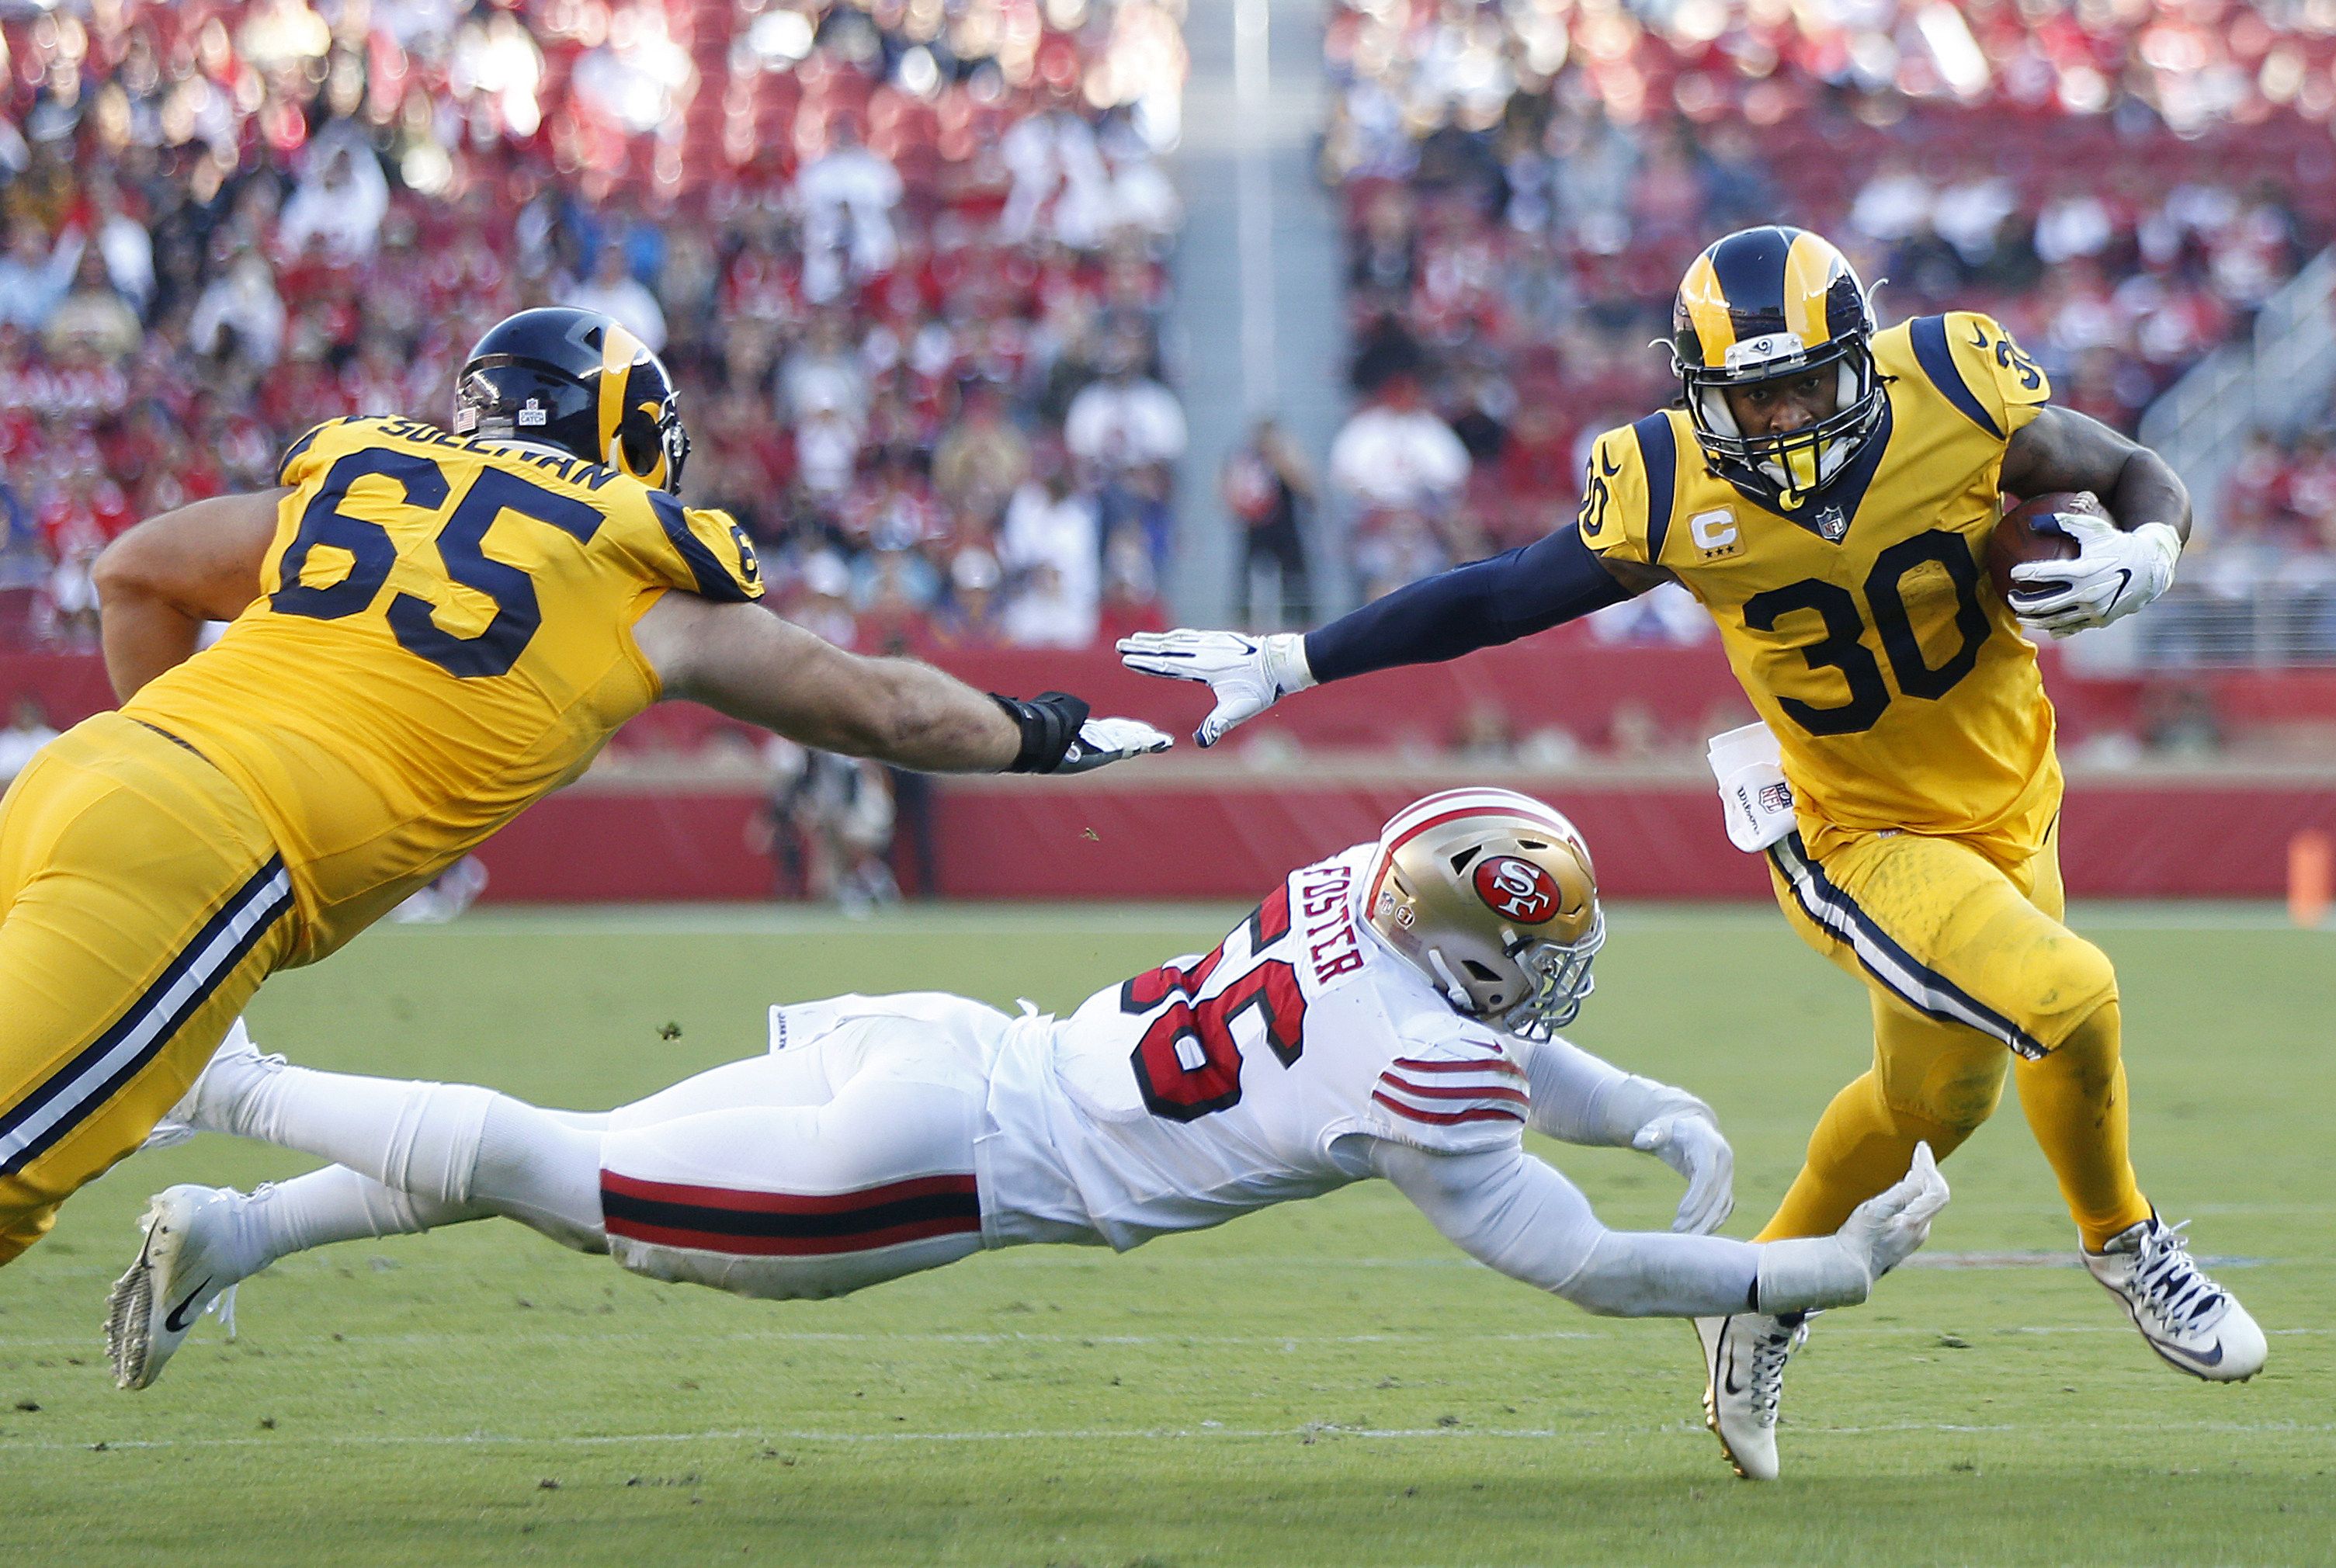 LB Reuben Foster struggles in year 2 for 49ers